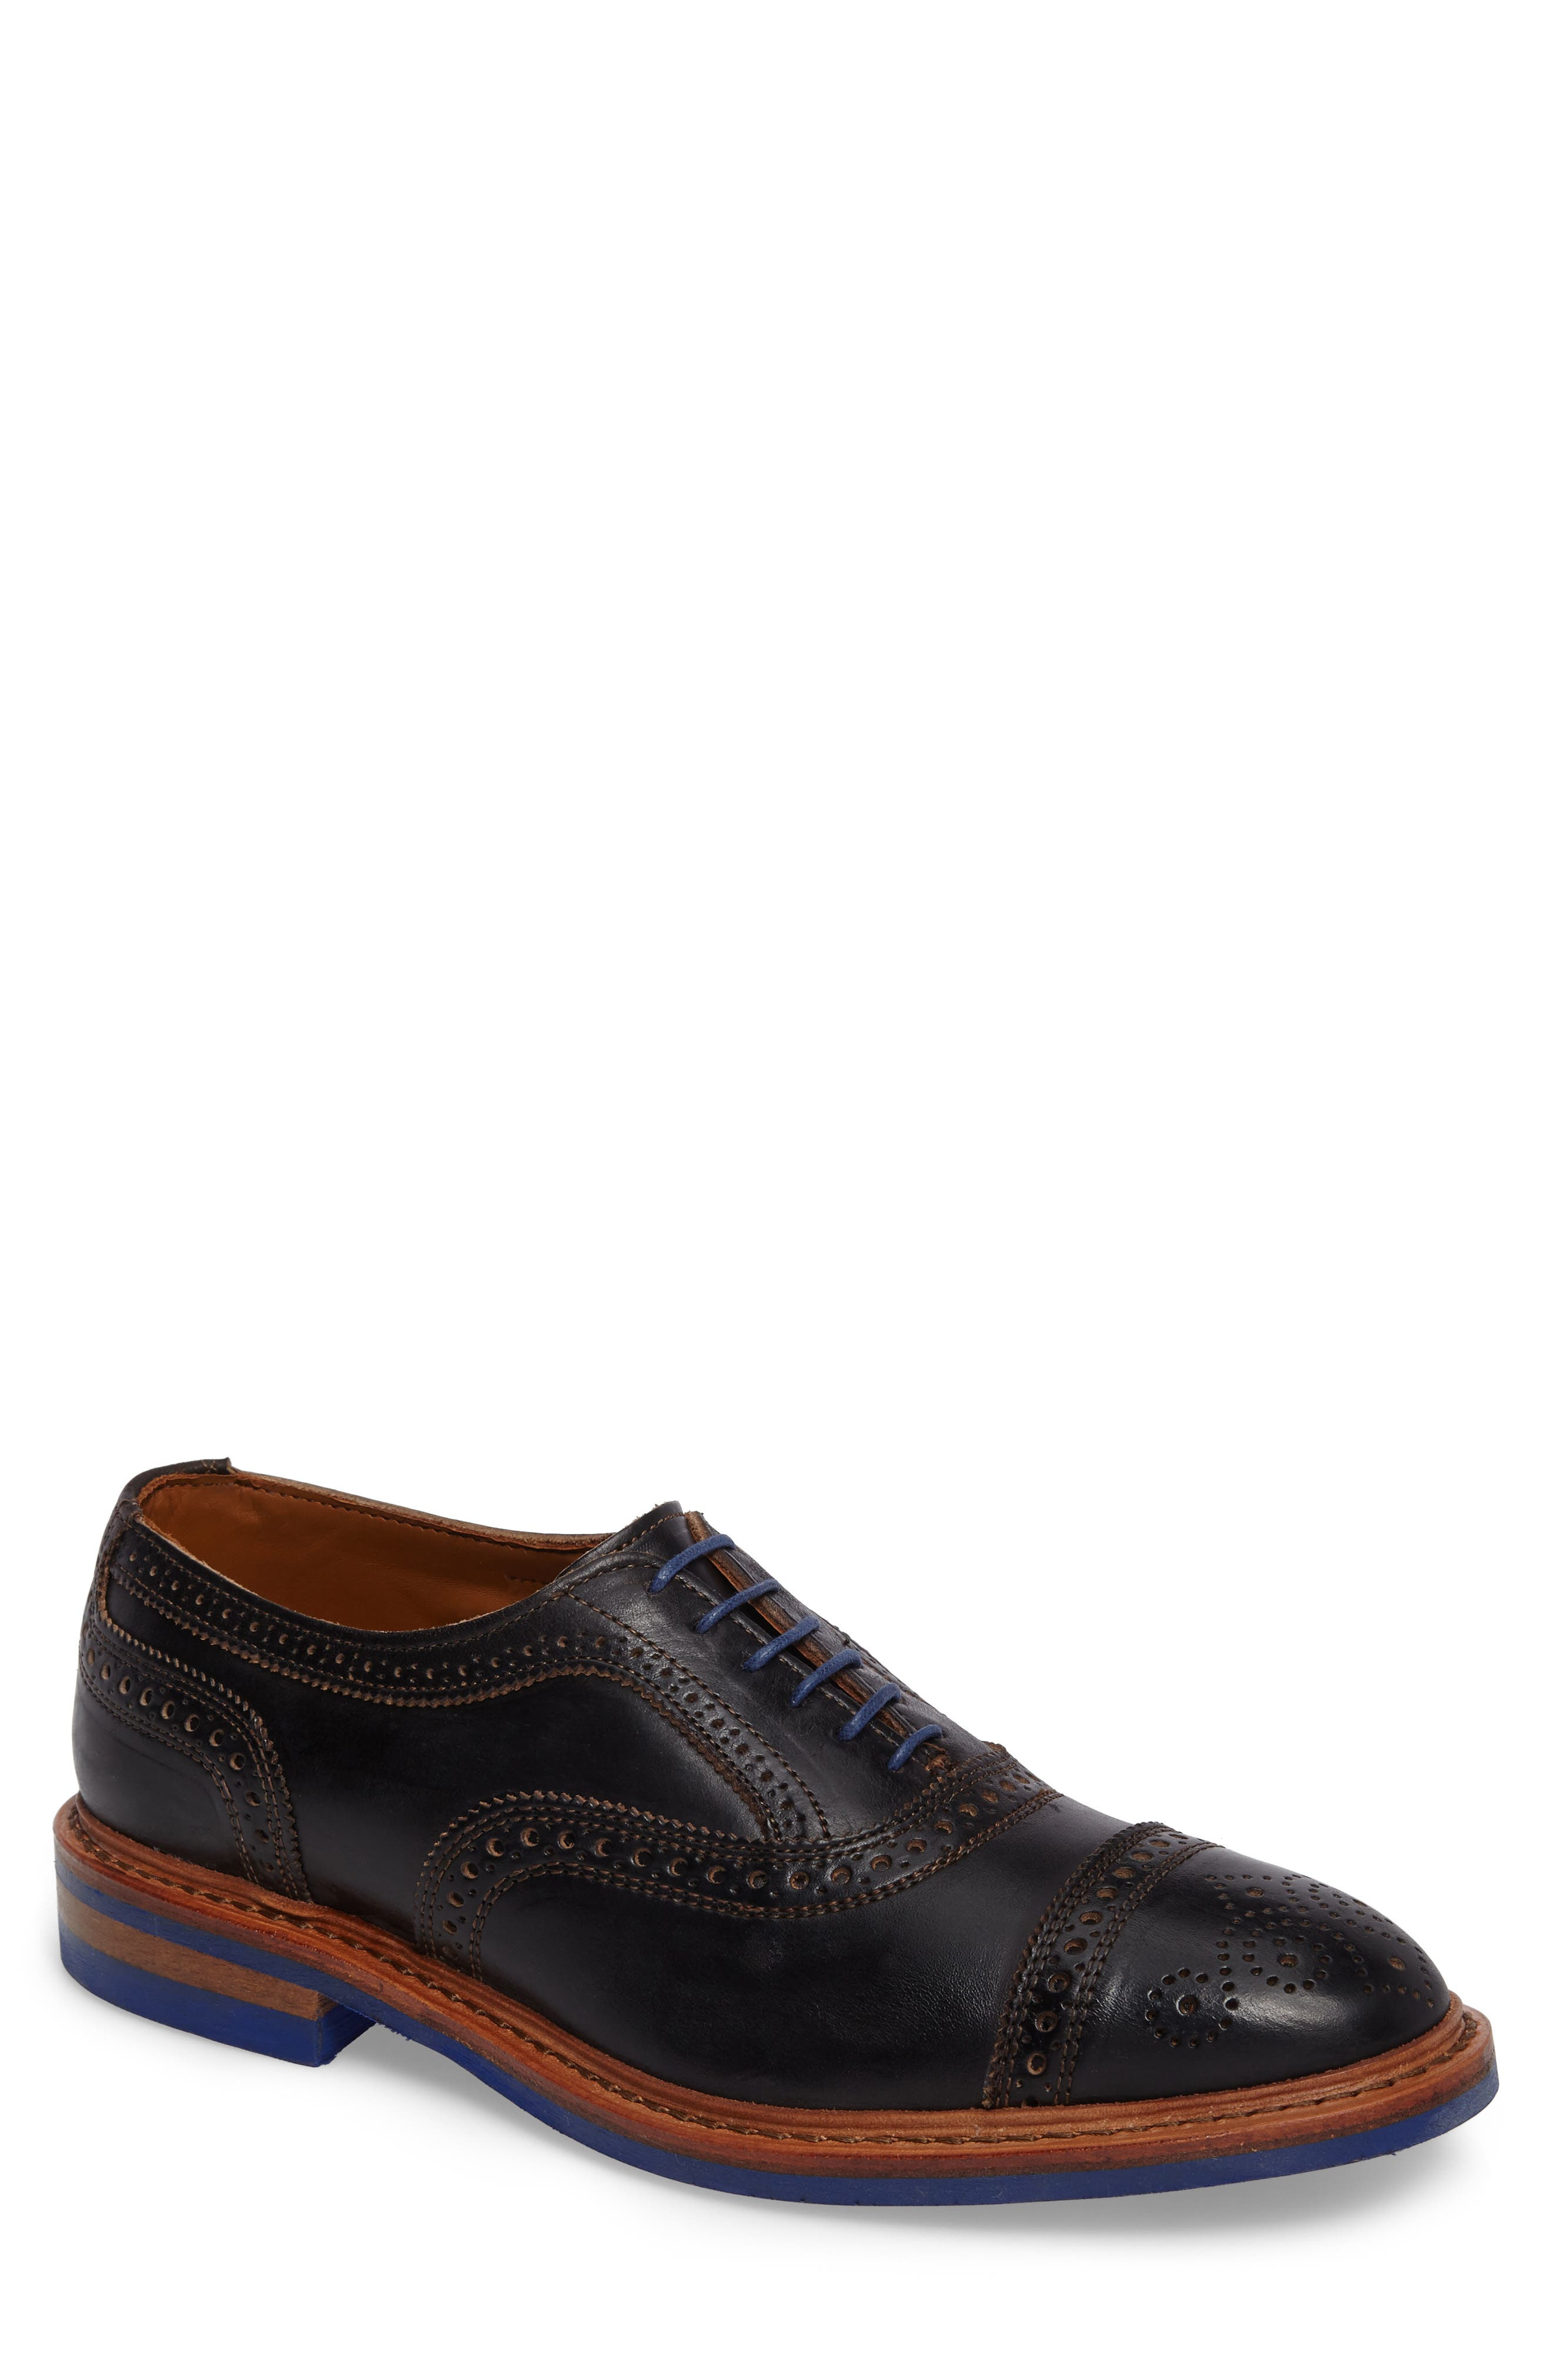 ALLEN EDMONDS 'Strandmok' Cap Toe Oxford, Main, color, BLACK LEATHER